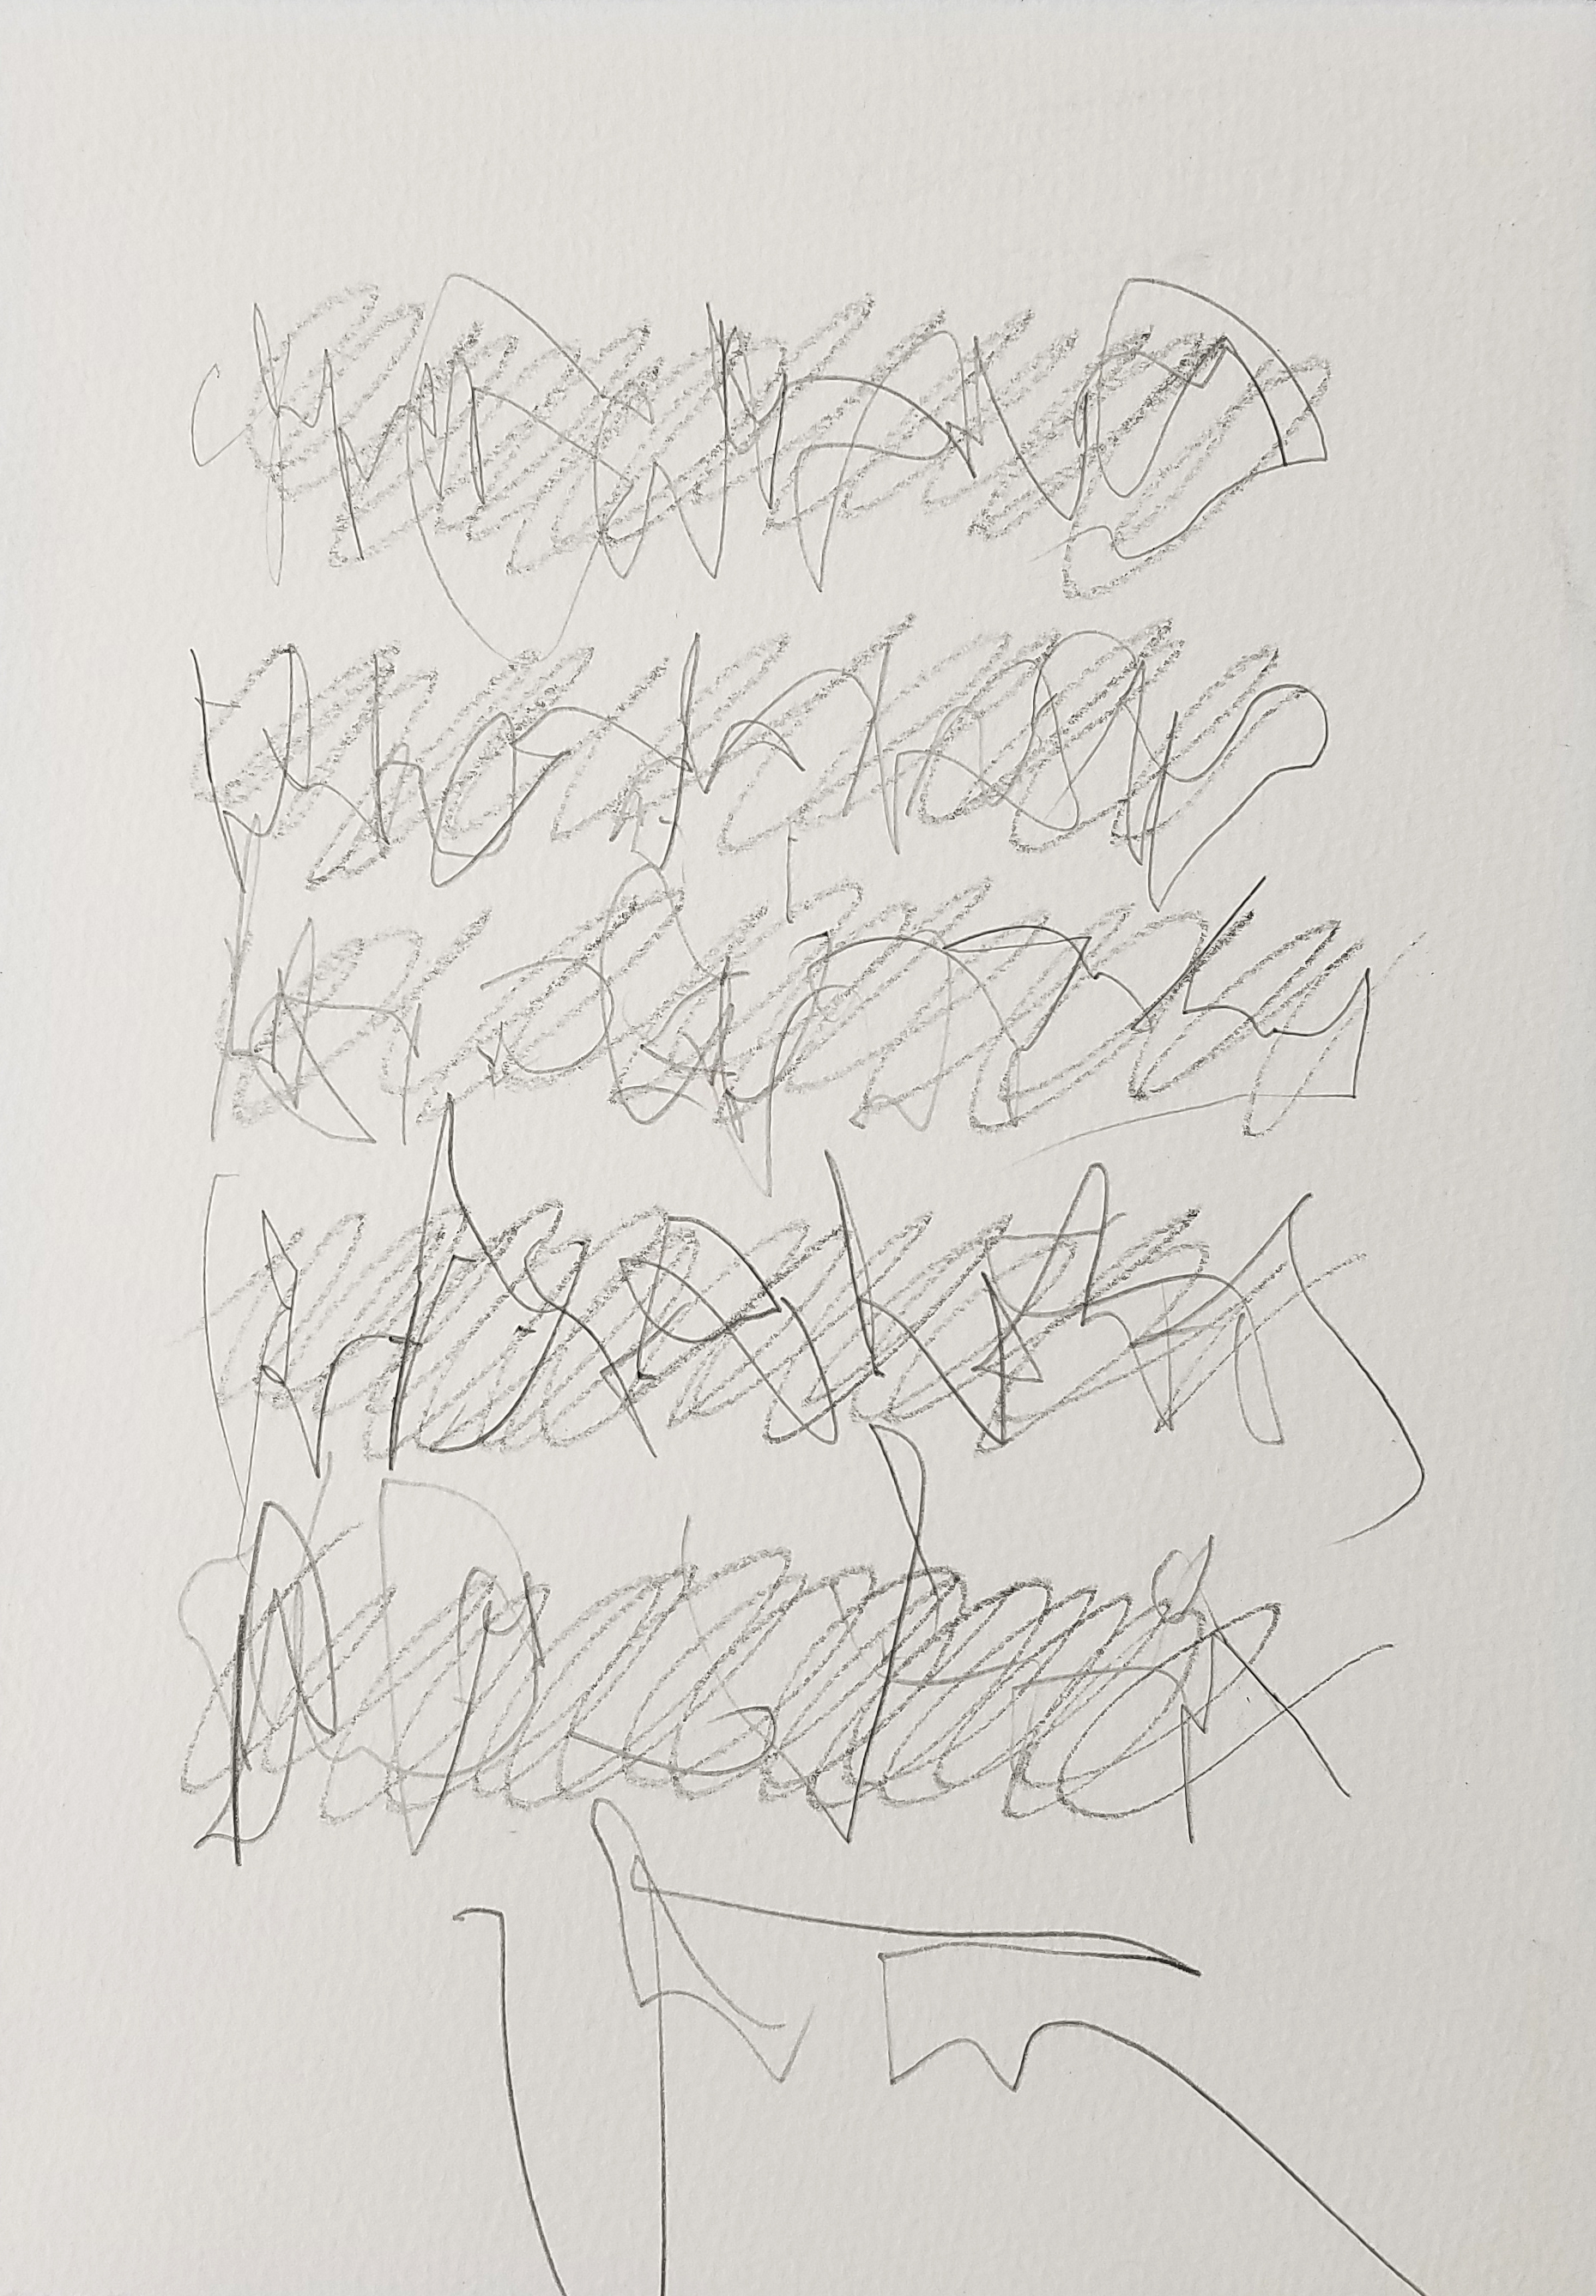 Letter to Andrew #08, Pencil on paper